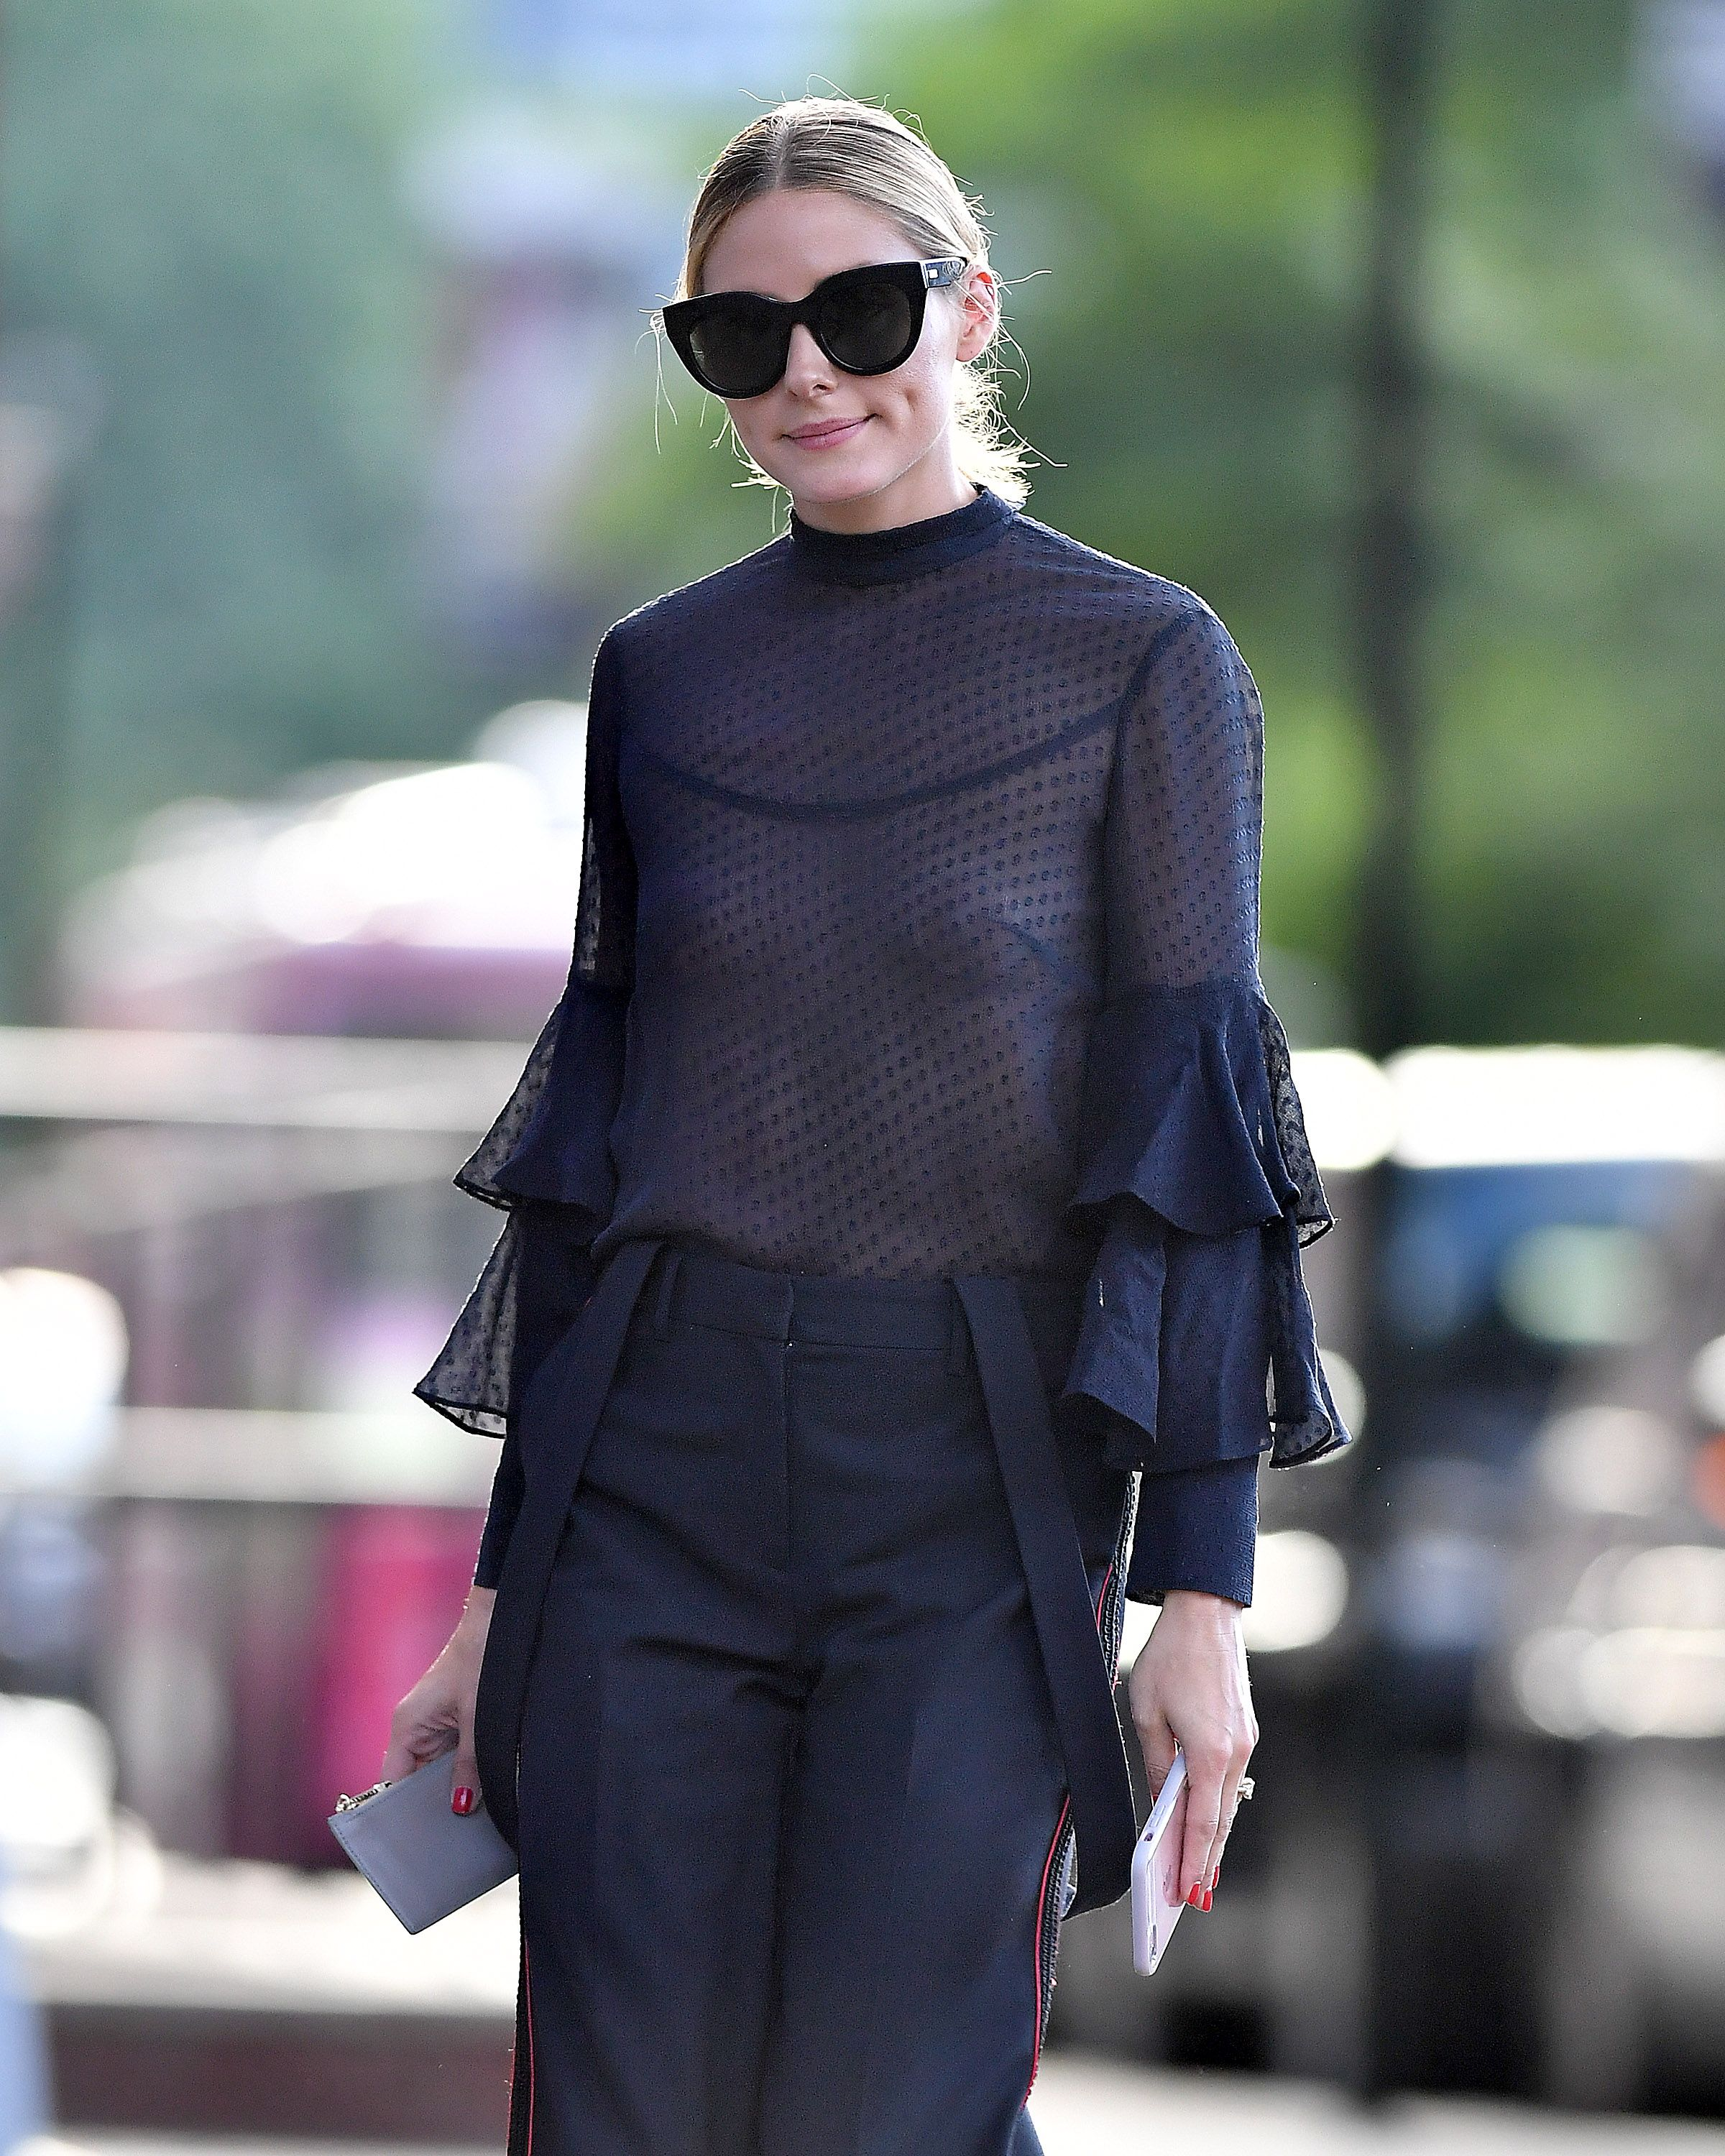 Olivia Palermo pussy showing